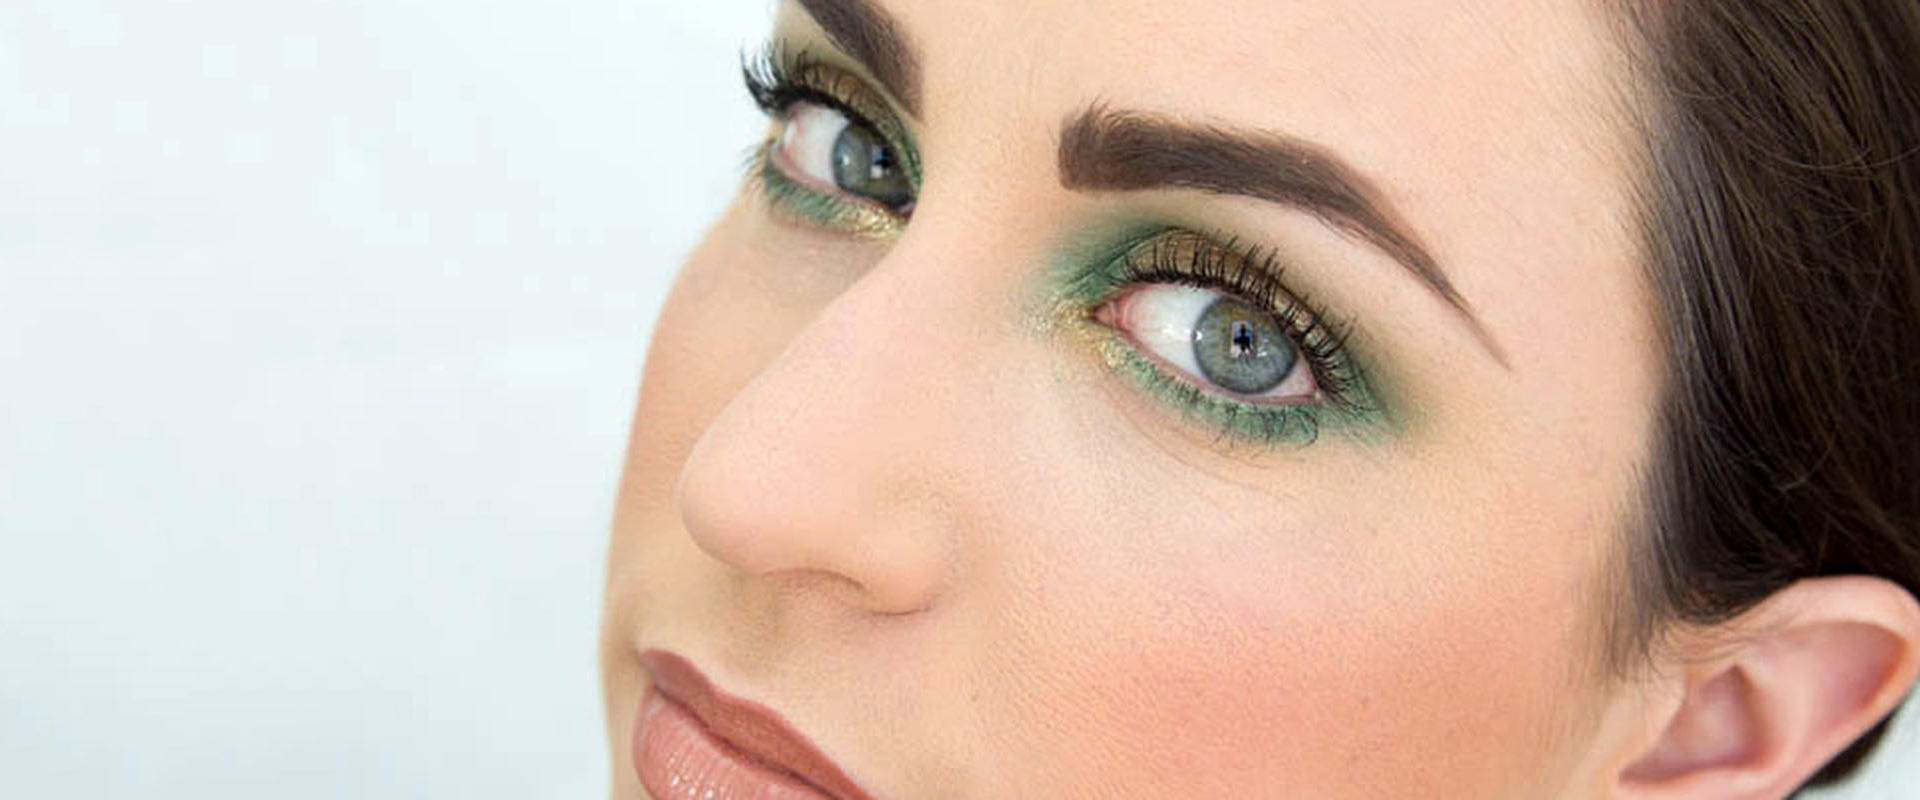 st. patrick's day makeup in gold and green